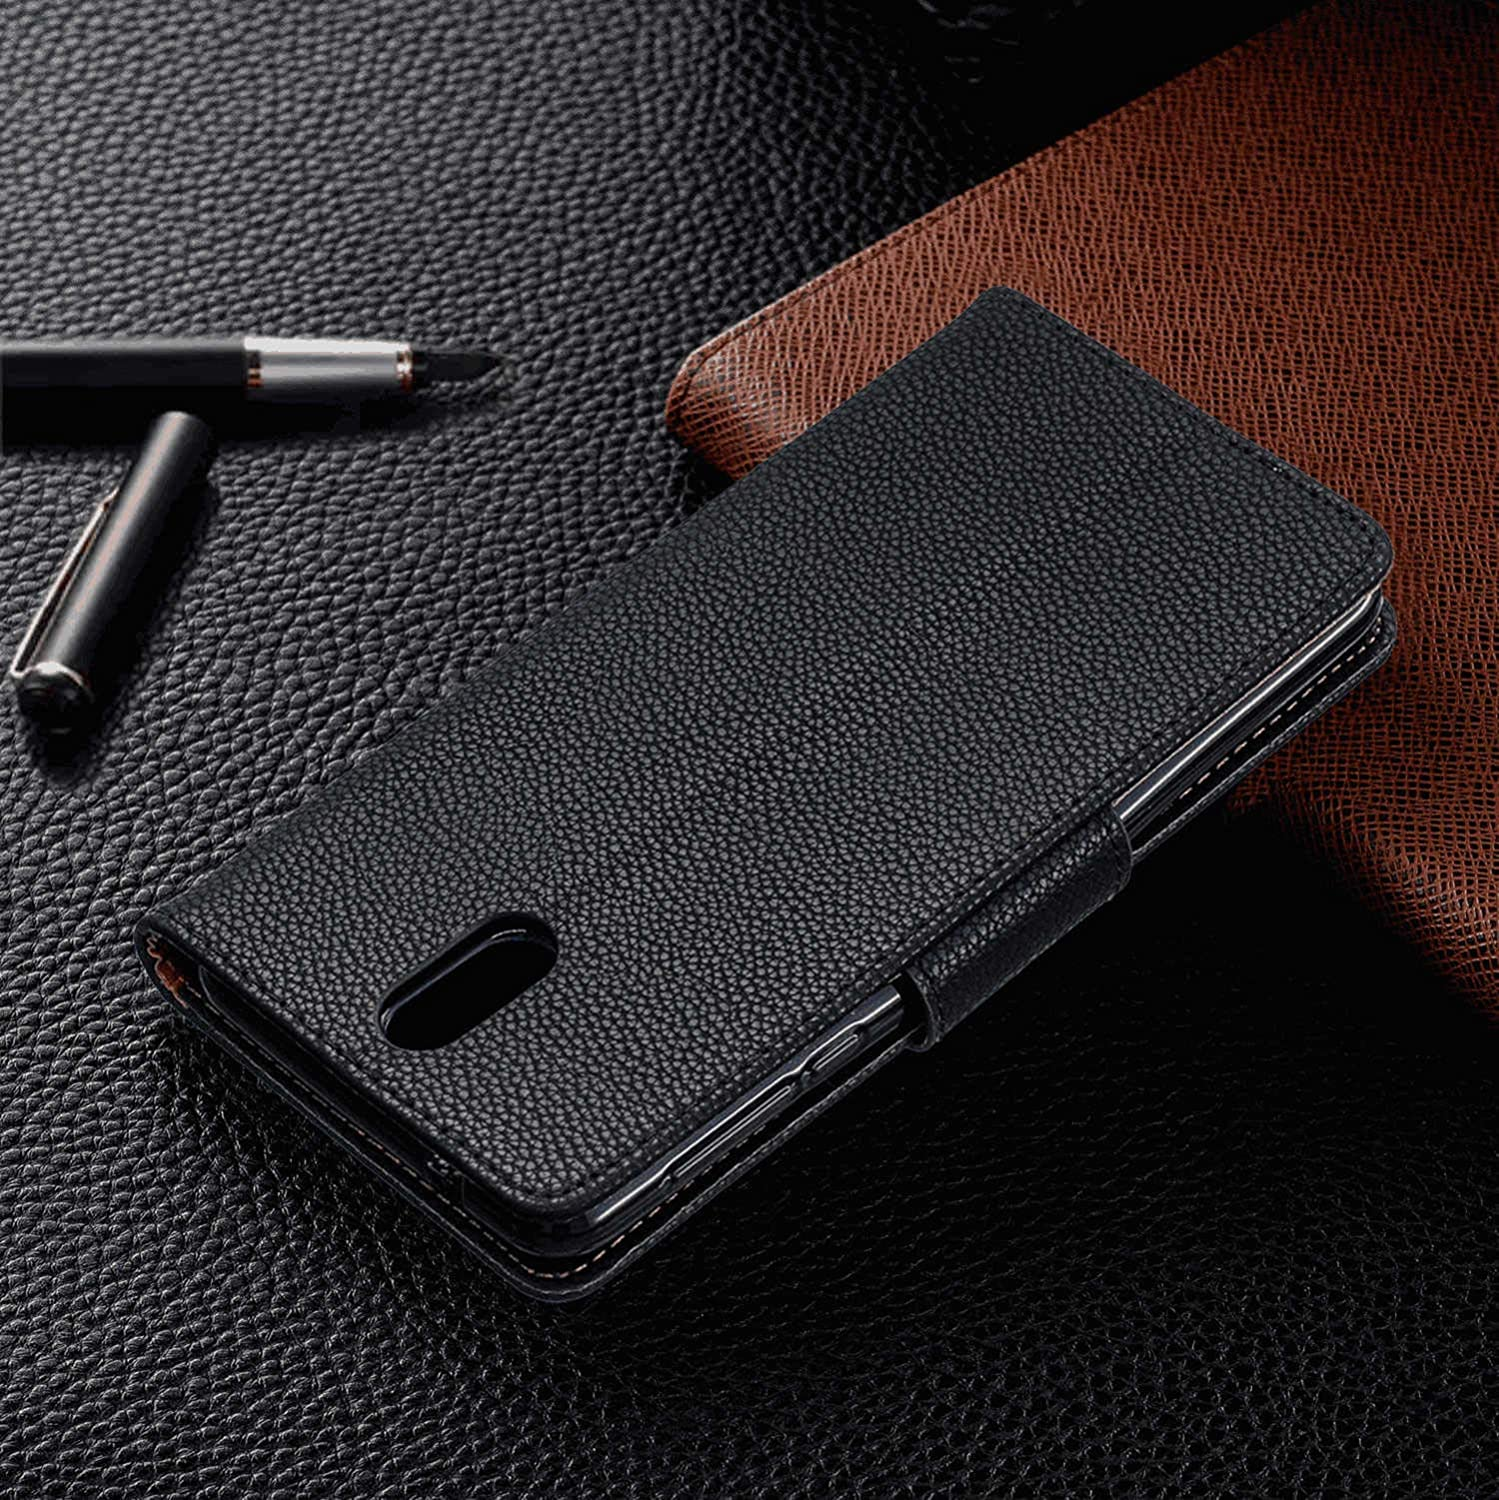 Samsung Galaxy S9 Plus Flip Case Cover for Samsung Galaxy S9 Plus Leather Cell Phone Cover Extra-Durable Business Kickstand Card Holders with Free Waterproof-Bag Absorbing